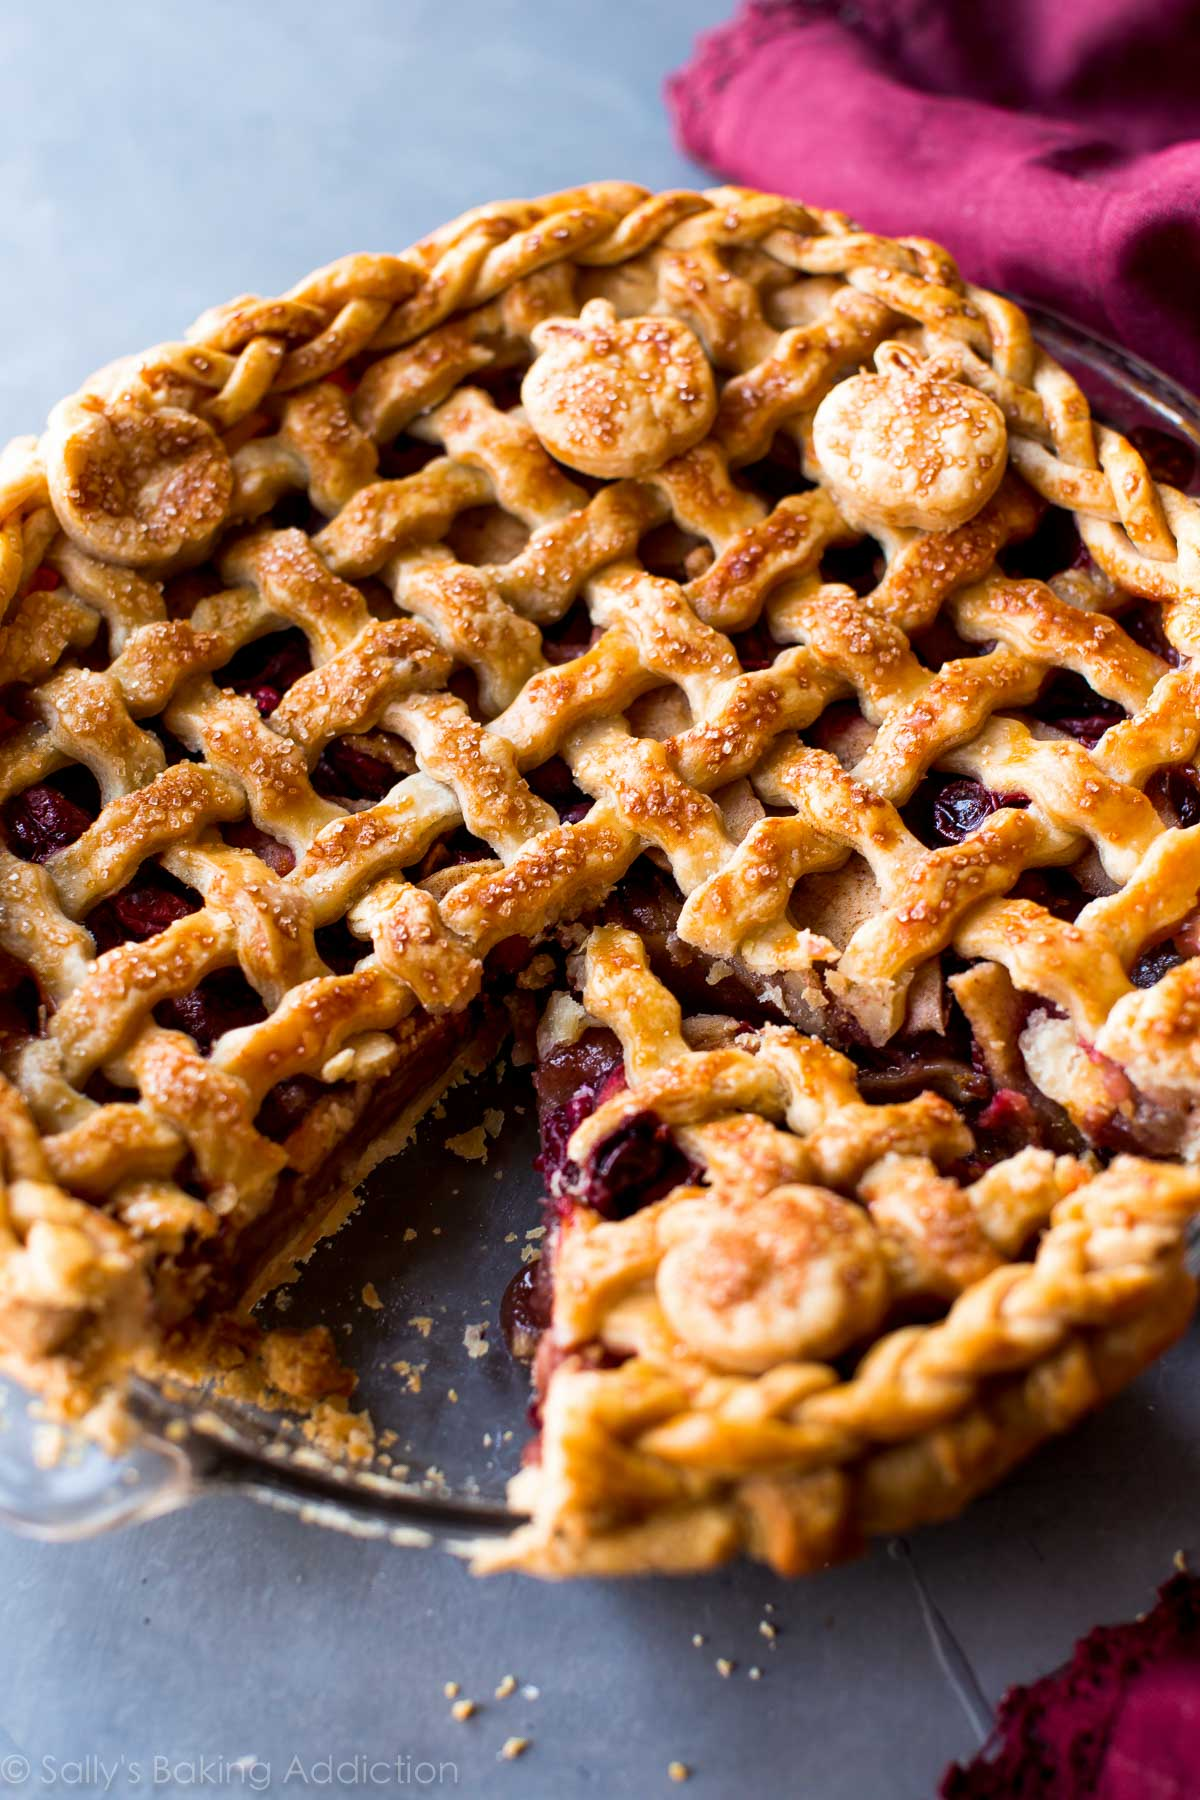 Sweet cinnamon apples and tart cranberries come together in this incredible Thanksgiving pie! Recipe on sallysbakingaddiction.com